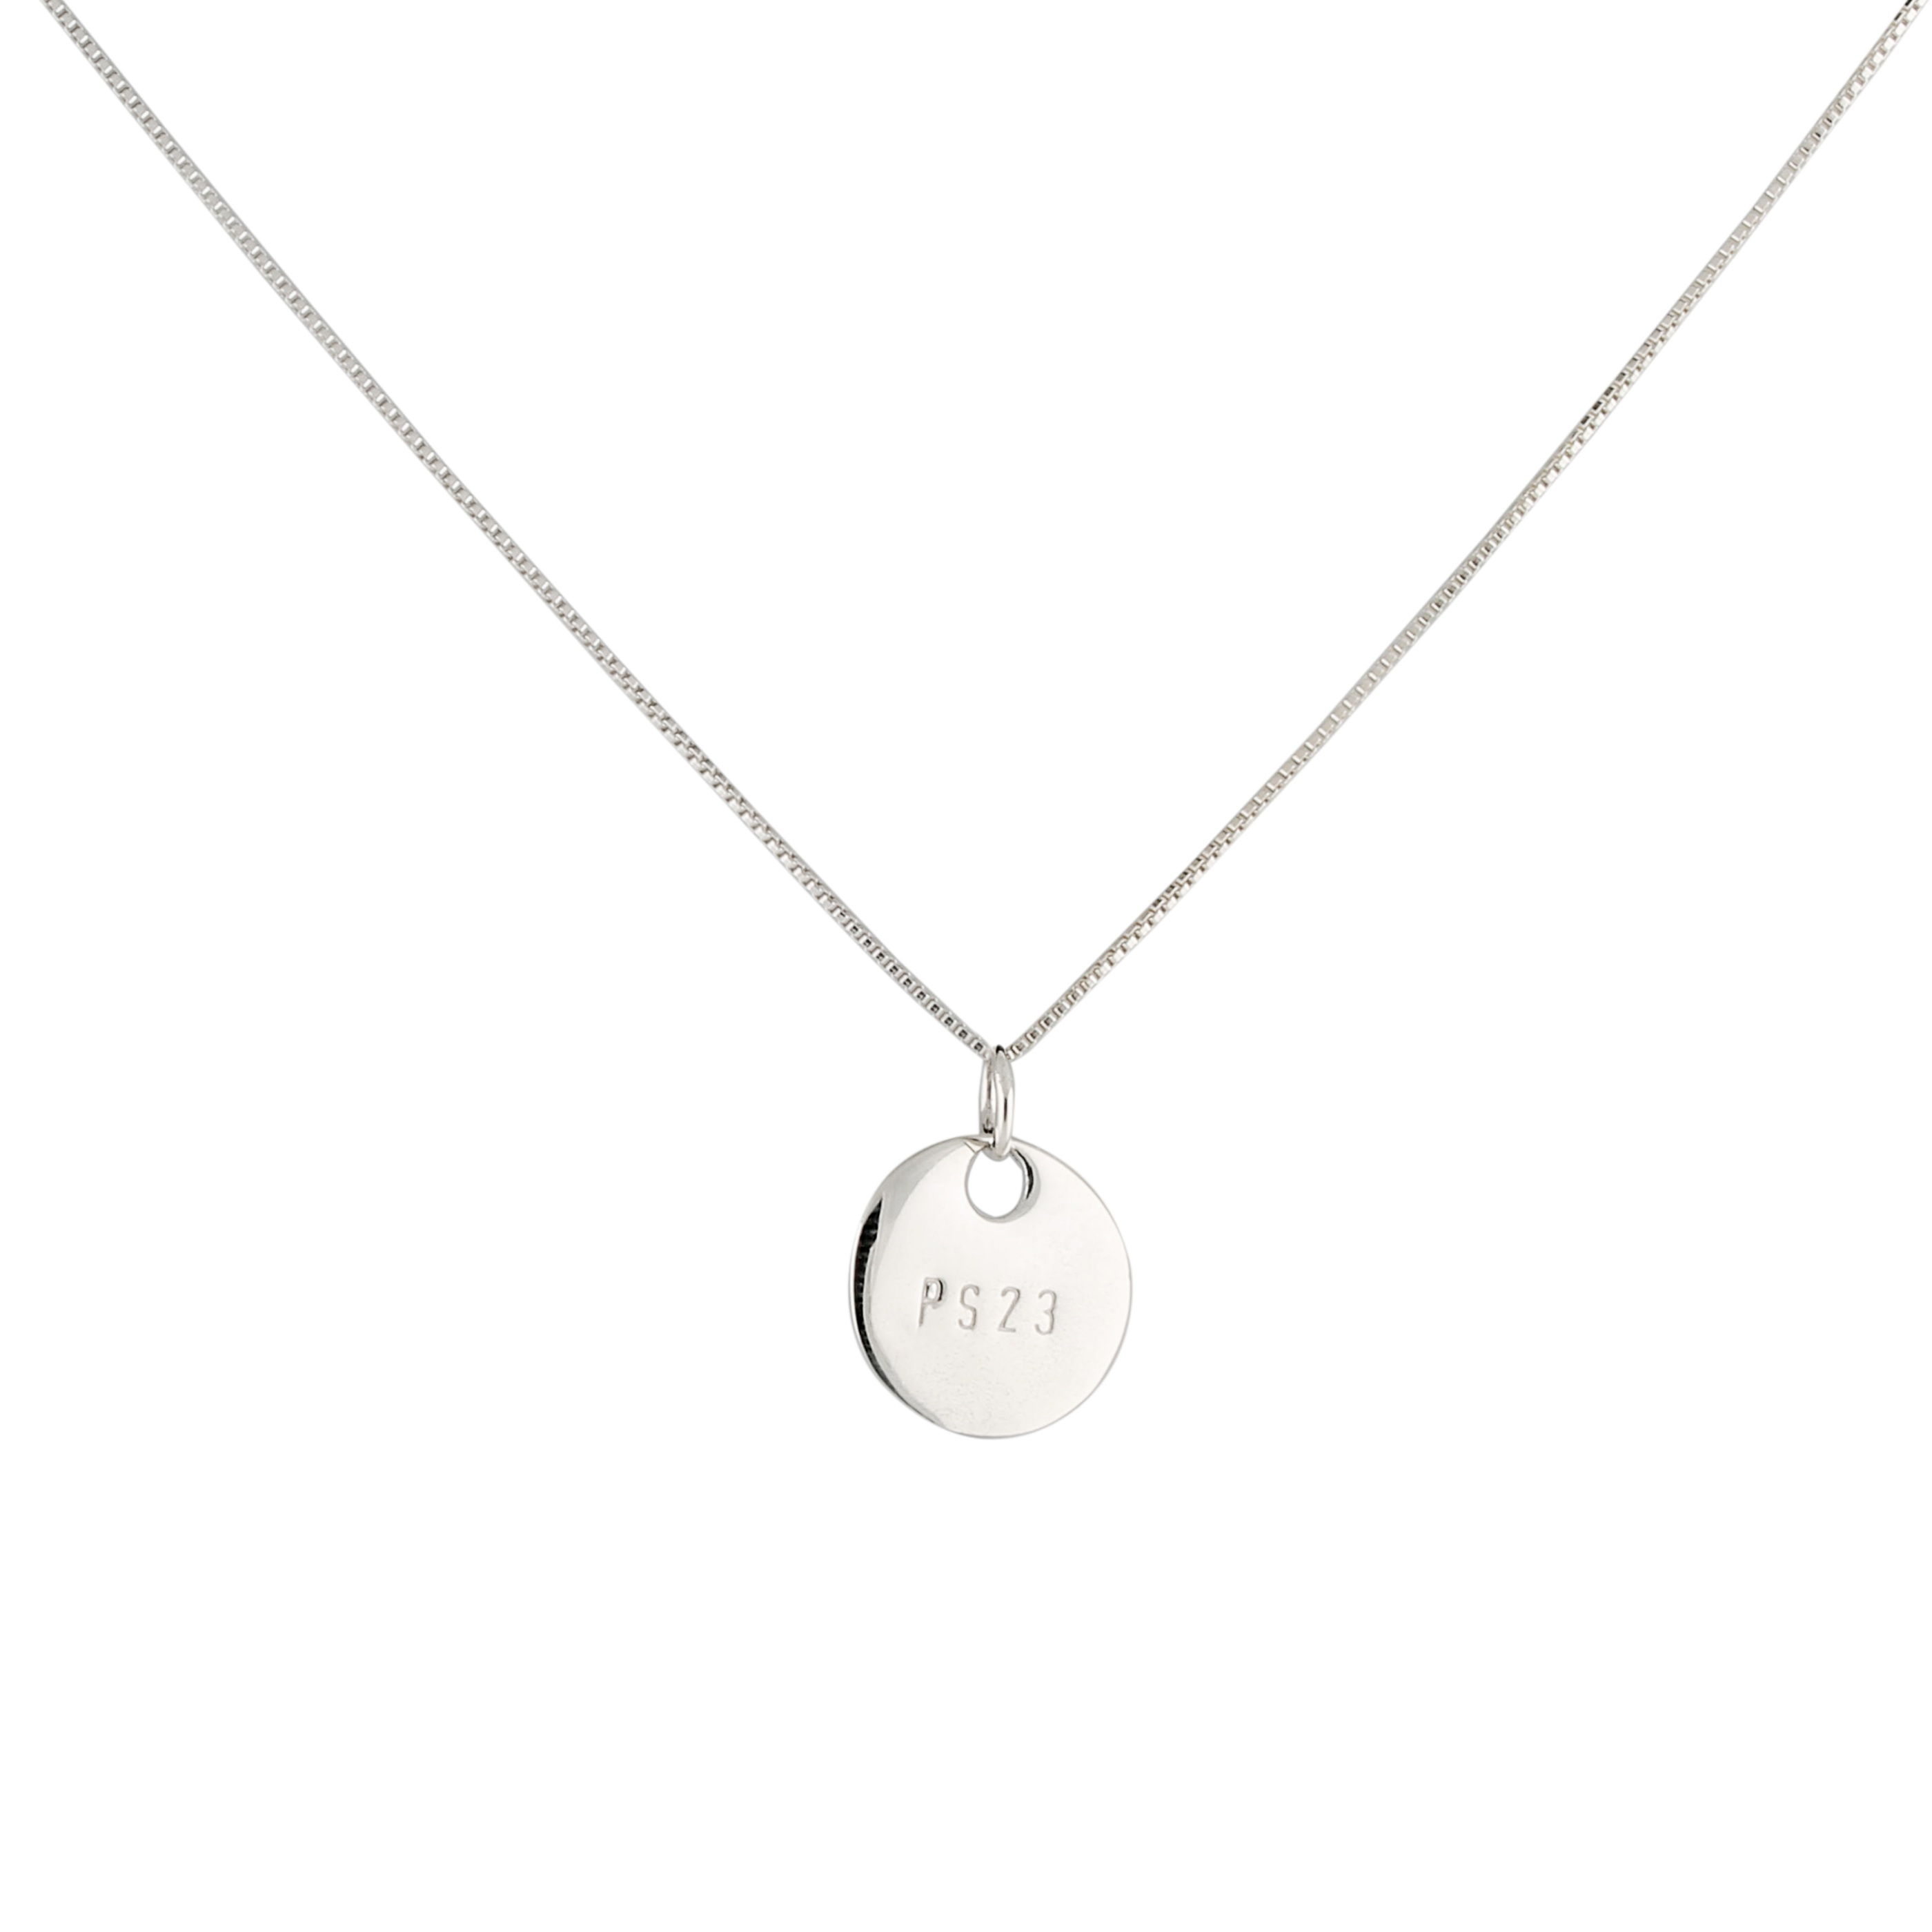 Small coin Ps23 necklace (short chain)